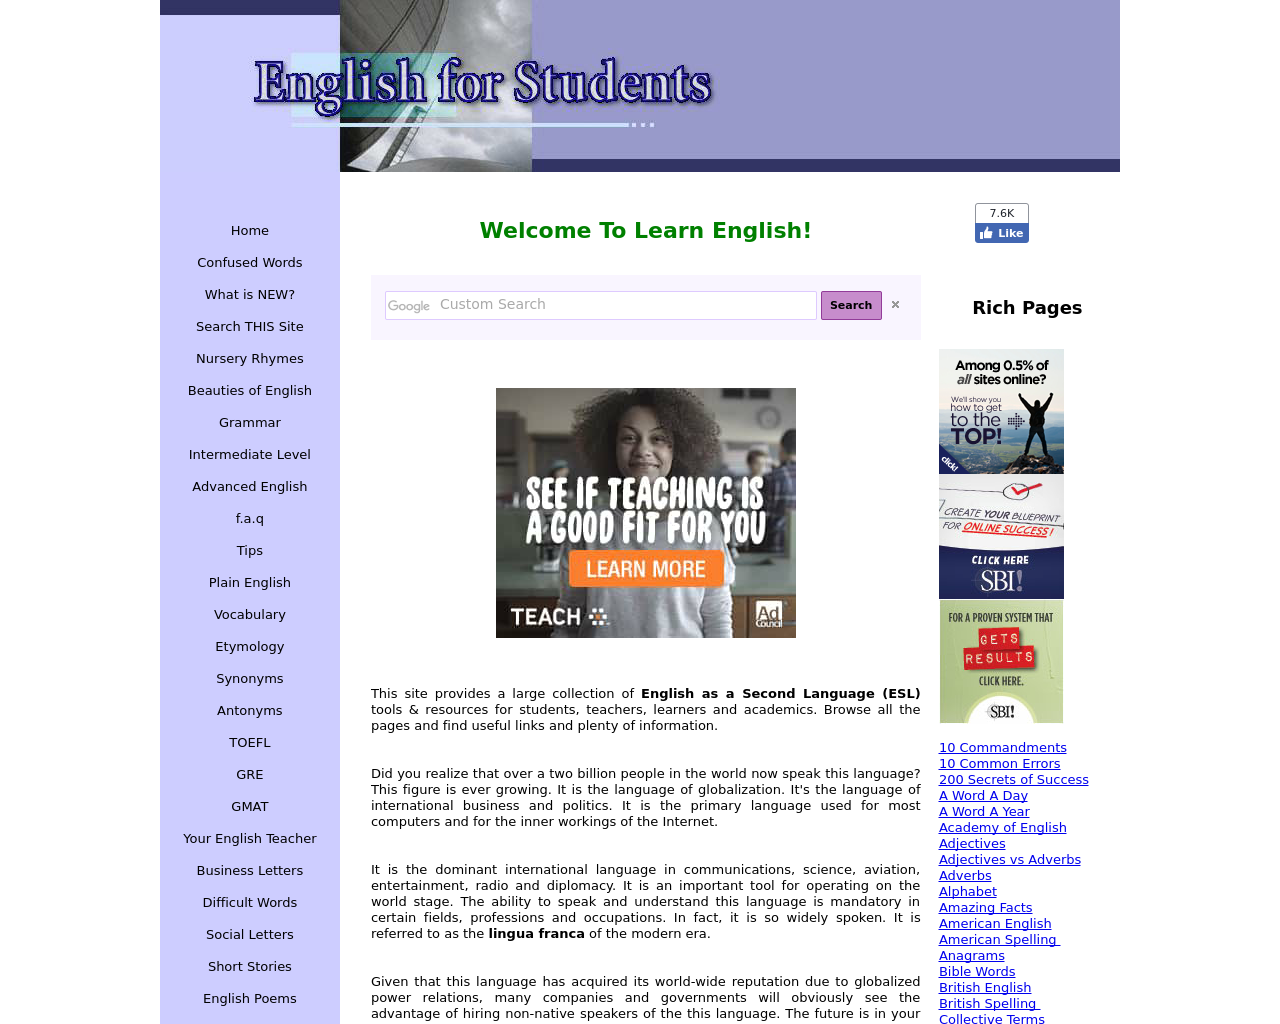 English-for-Students-Advertising-Reviews-Pricing